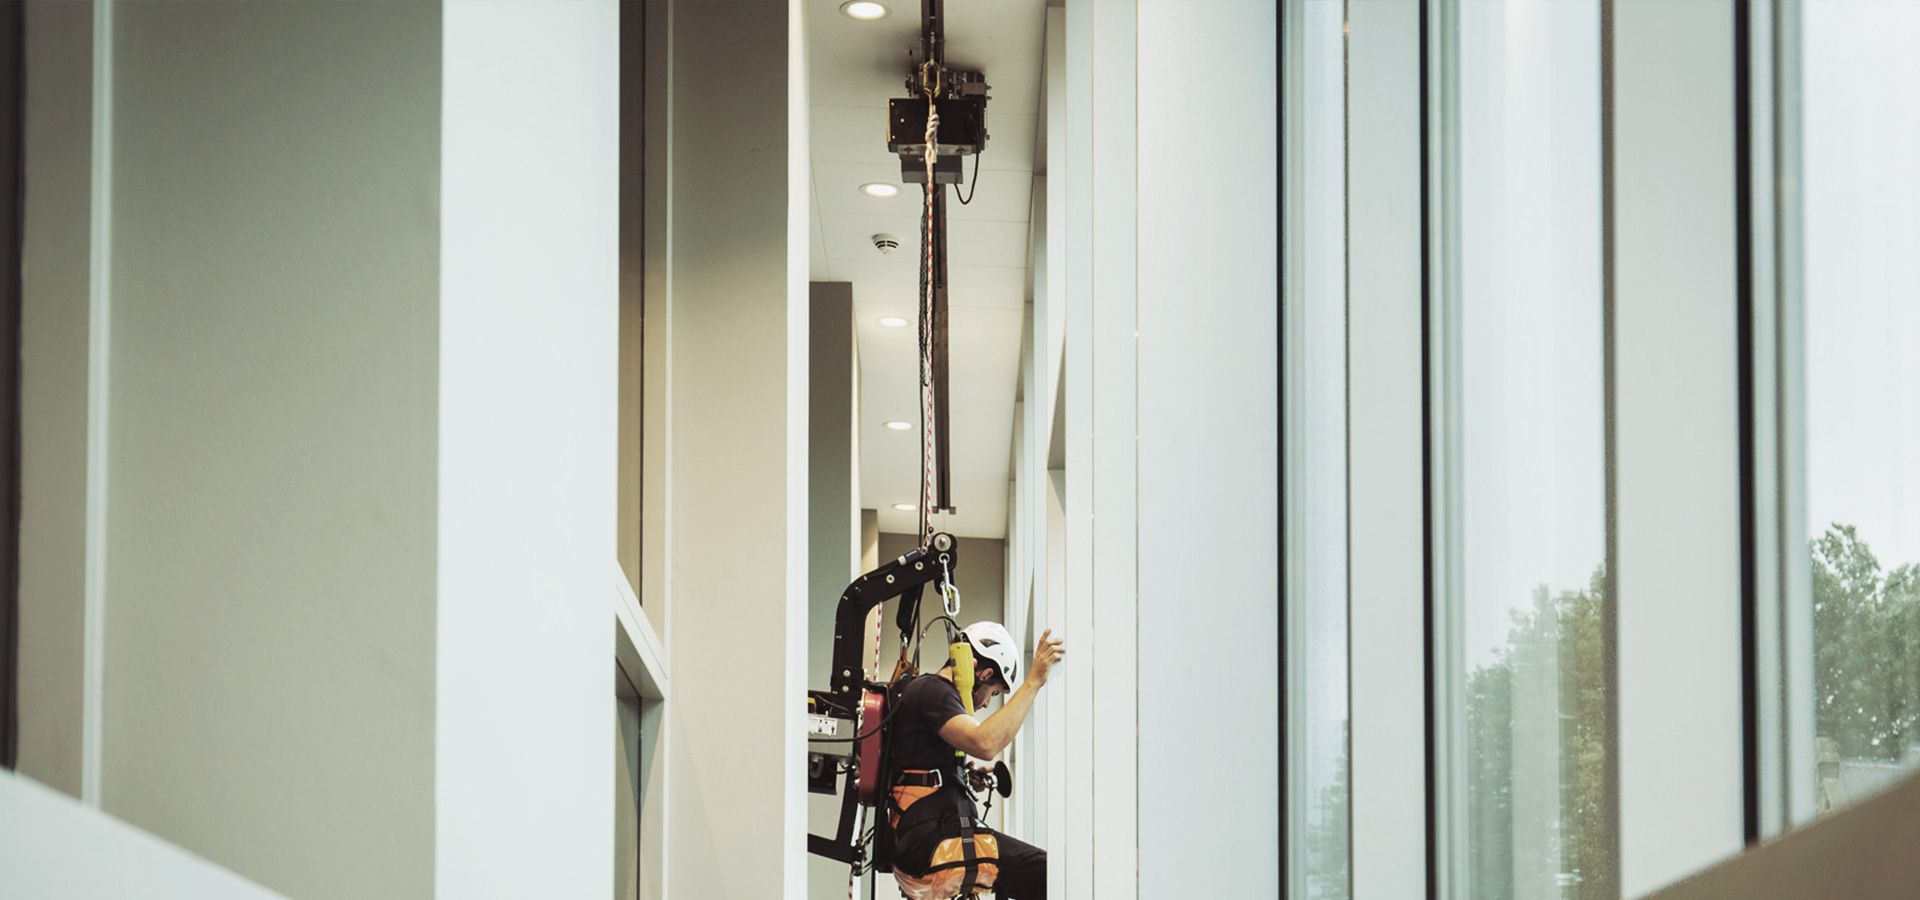 RopeClimber person hoist in a cultural center